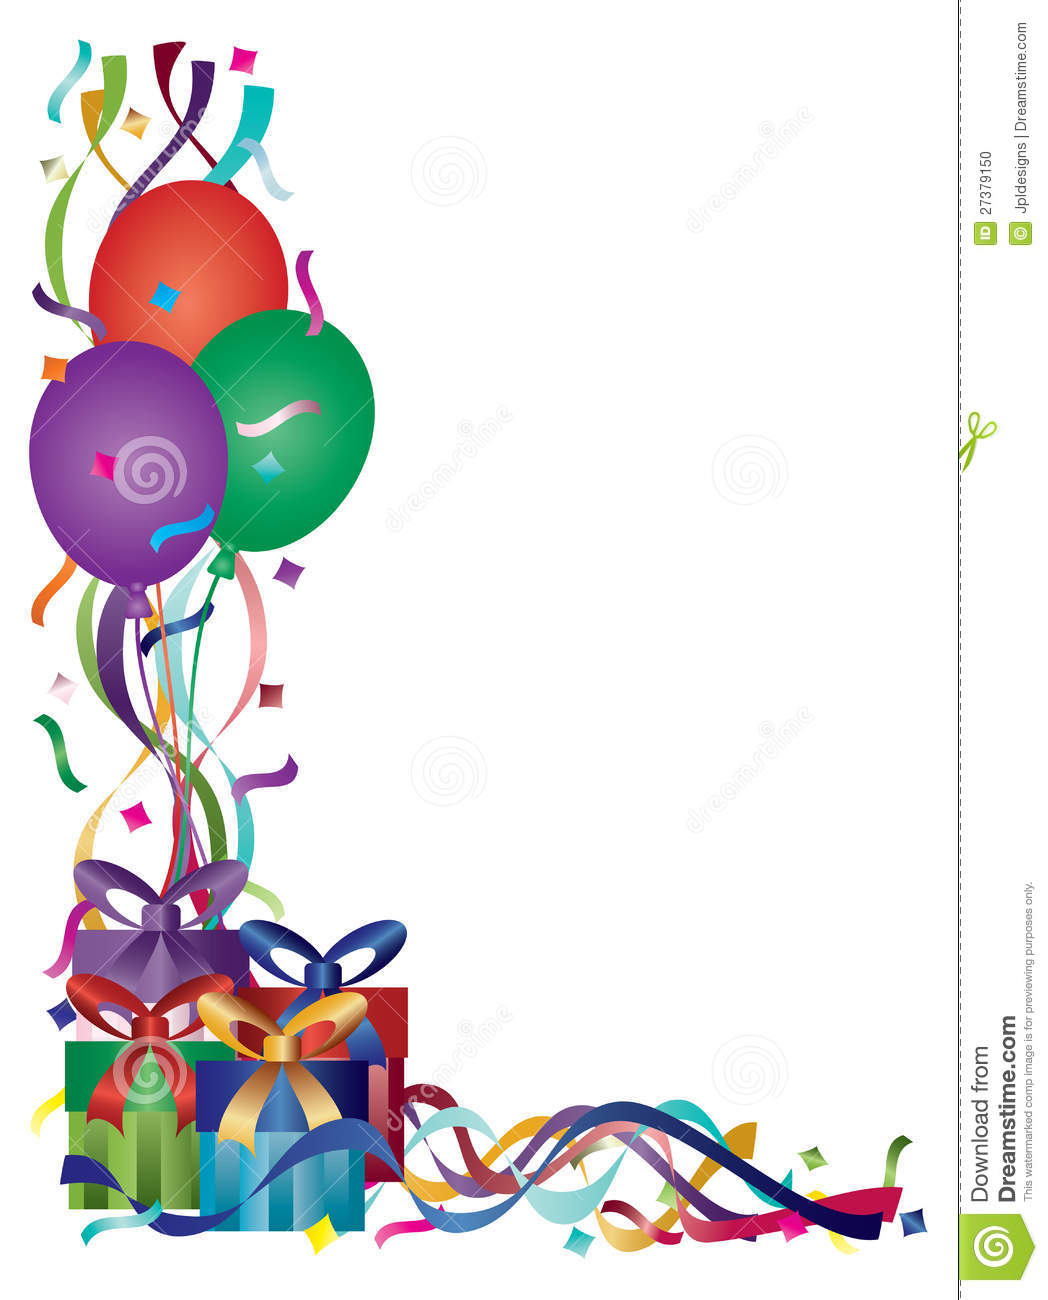 birthday borders for microsoft word ; birthday-border-free-clip-art-birthday-borders-panda-free-images-clipart-birthday-border-clipart-1048-1300